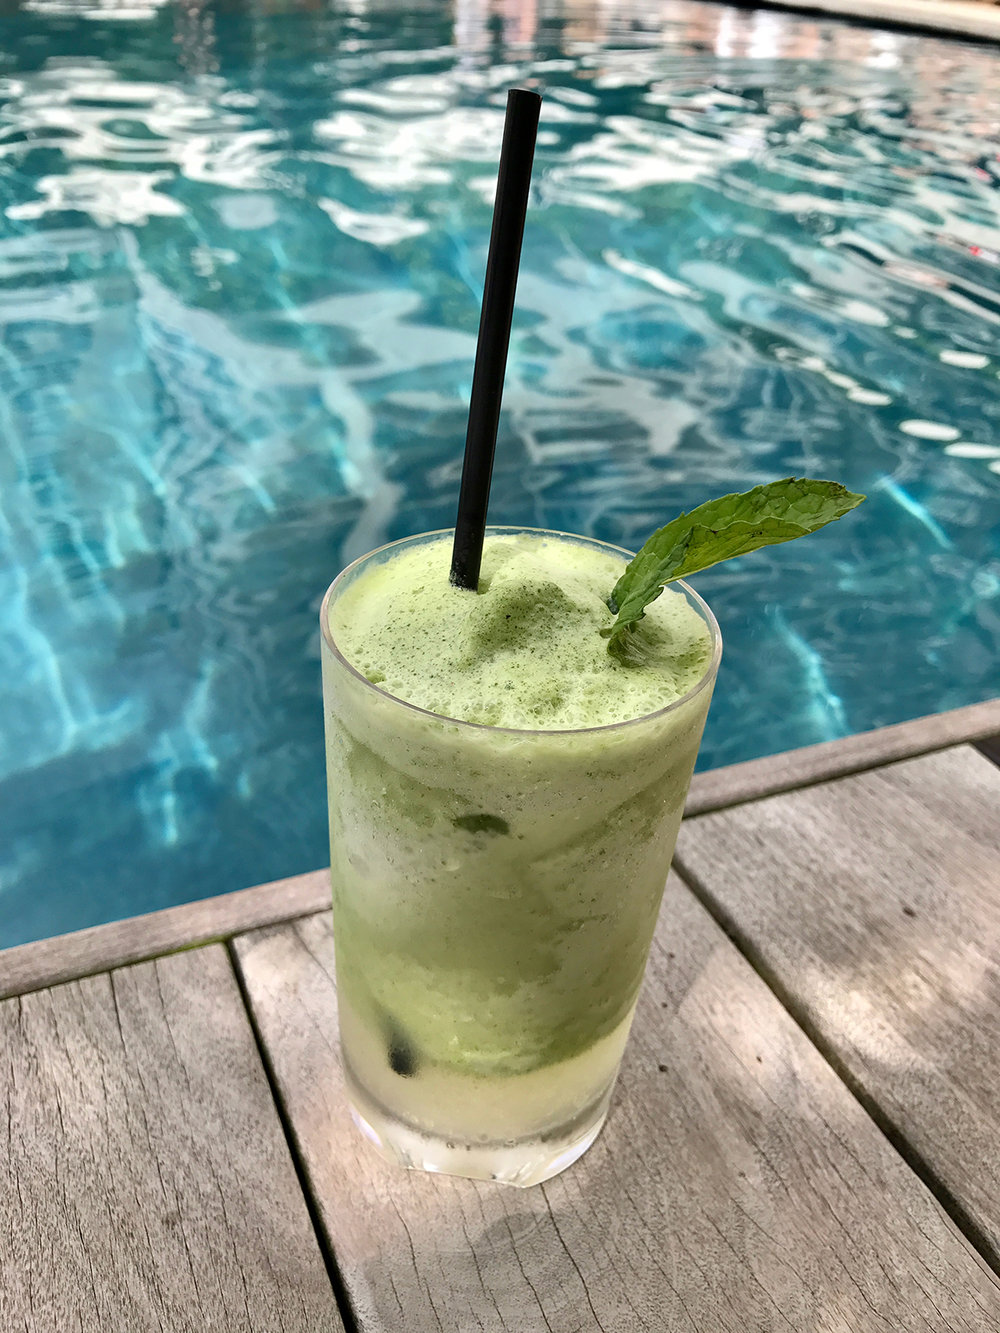 Have a  Coconut Mojito  by the pool. Not enough adjectives for how good it is. Just trust me and go there.